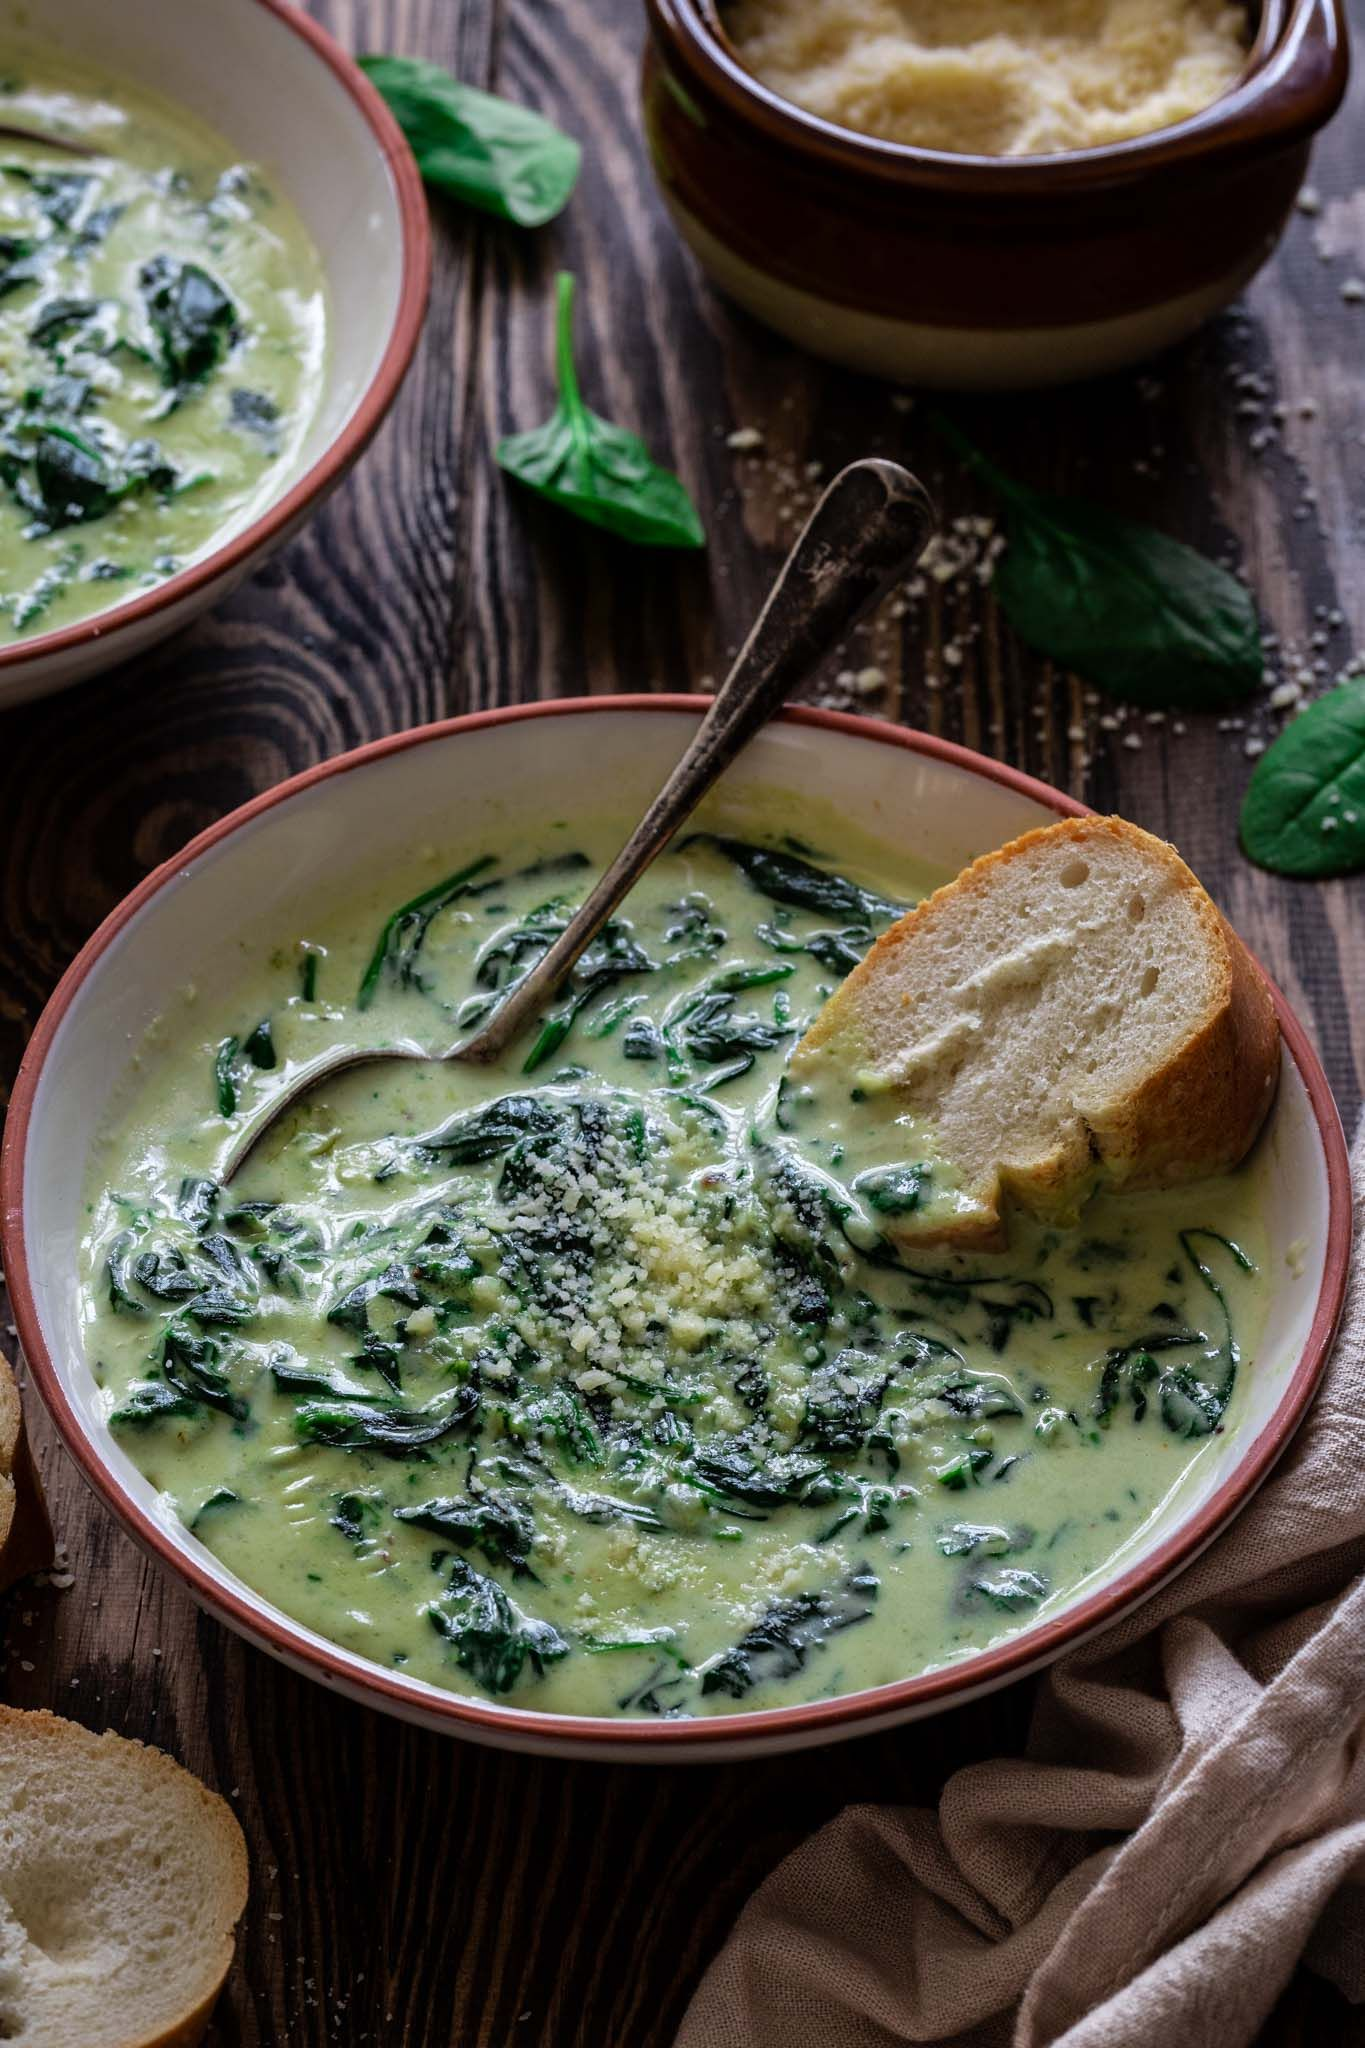 Cream of Spinach Soup | www.oliviascuisine.com | There's no better way to warm up than with a bowl of this Cream of Spinach Soup! Creamy, rich and so easy to make. Dinner will be ready in less than 20 minutes! (Recipe and food photography by @oliviascuisine). #soup #healthyrecipes #vegetarian #meatless #comfortfood #spinachsoup